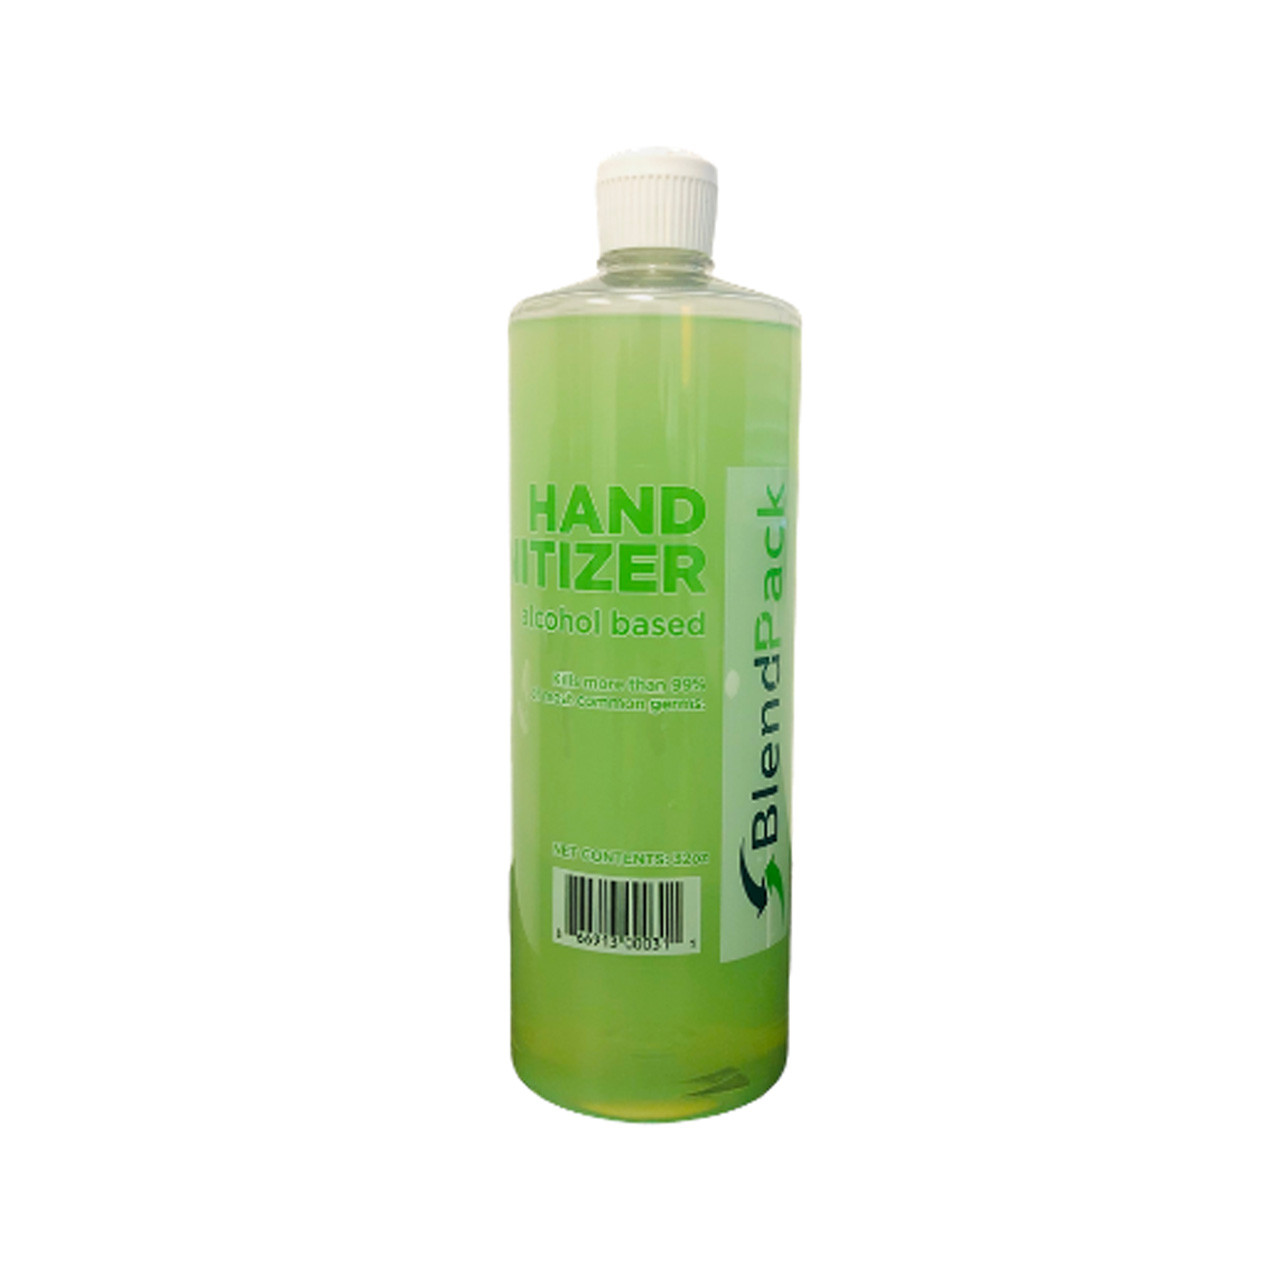 Hand Sanitizer 32 oz